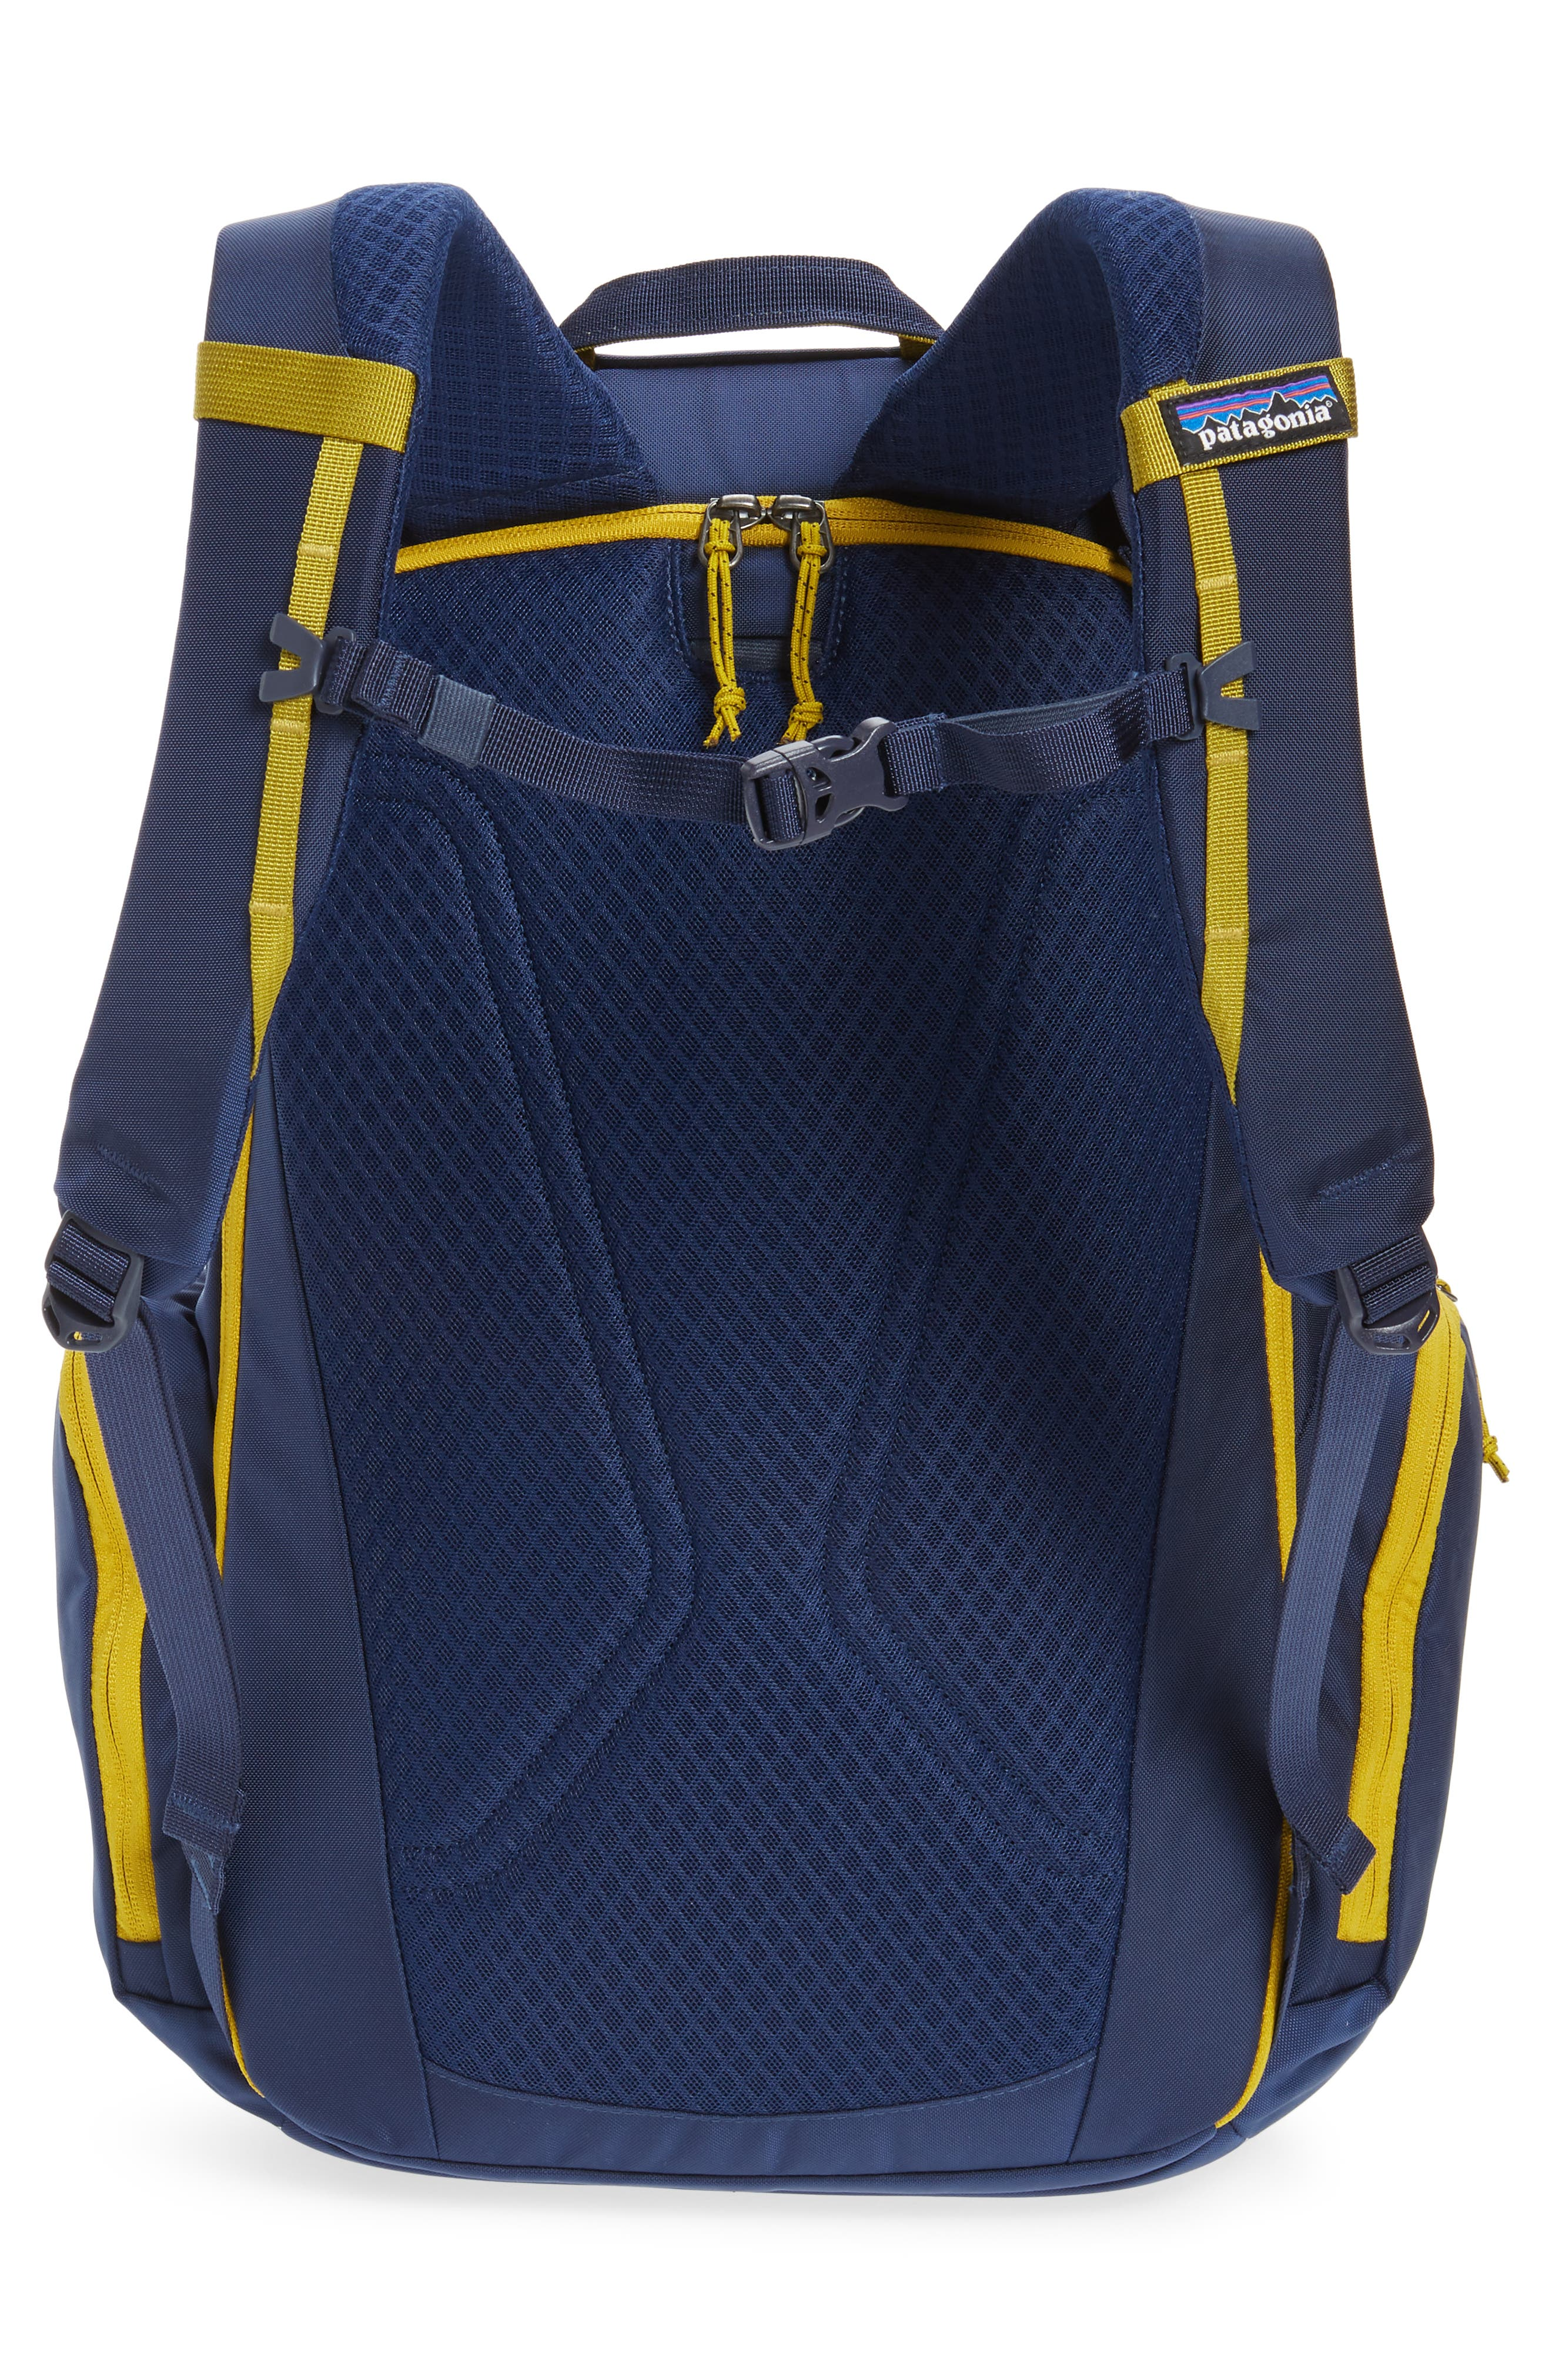 Paxat 32-Liter Backpack,                             Alternate thumbnail 3, color,                             CLASSIC NAVY